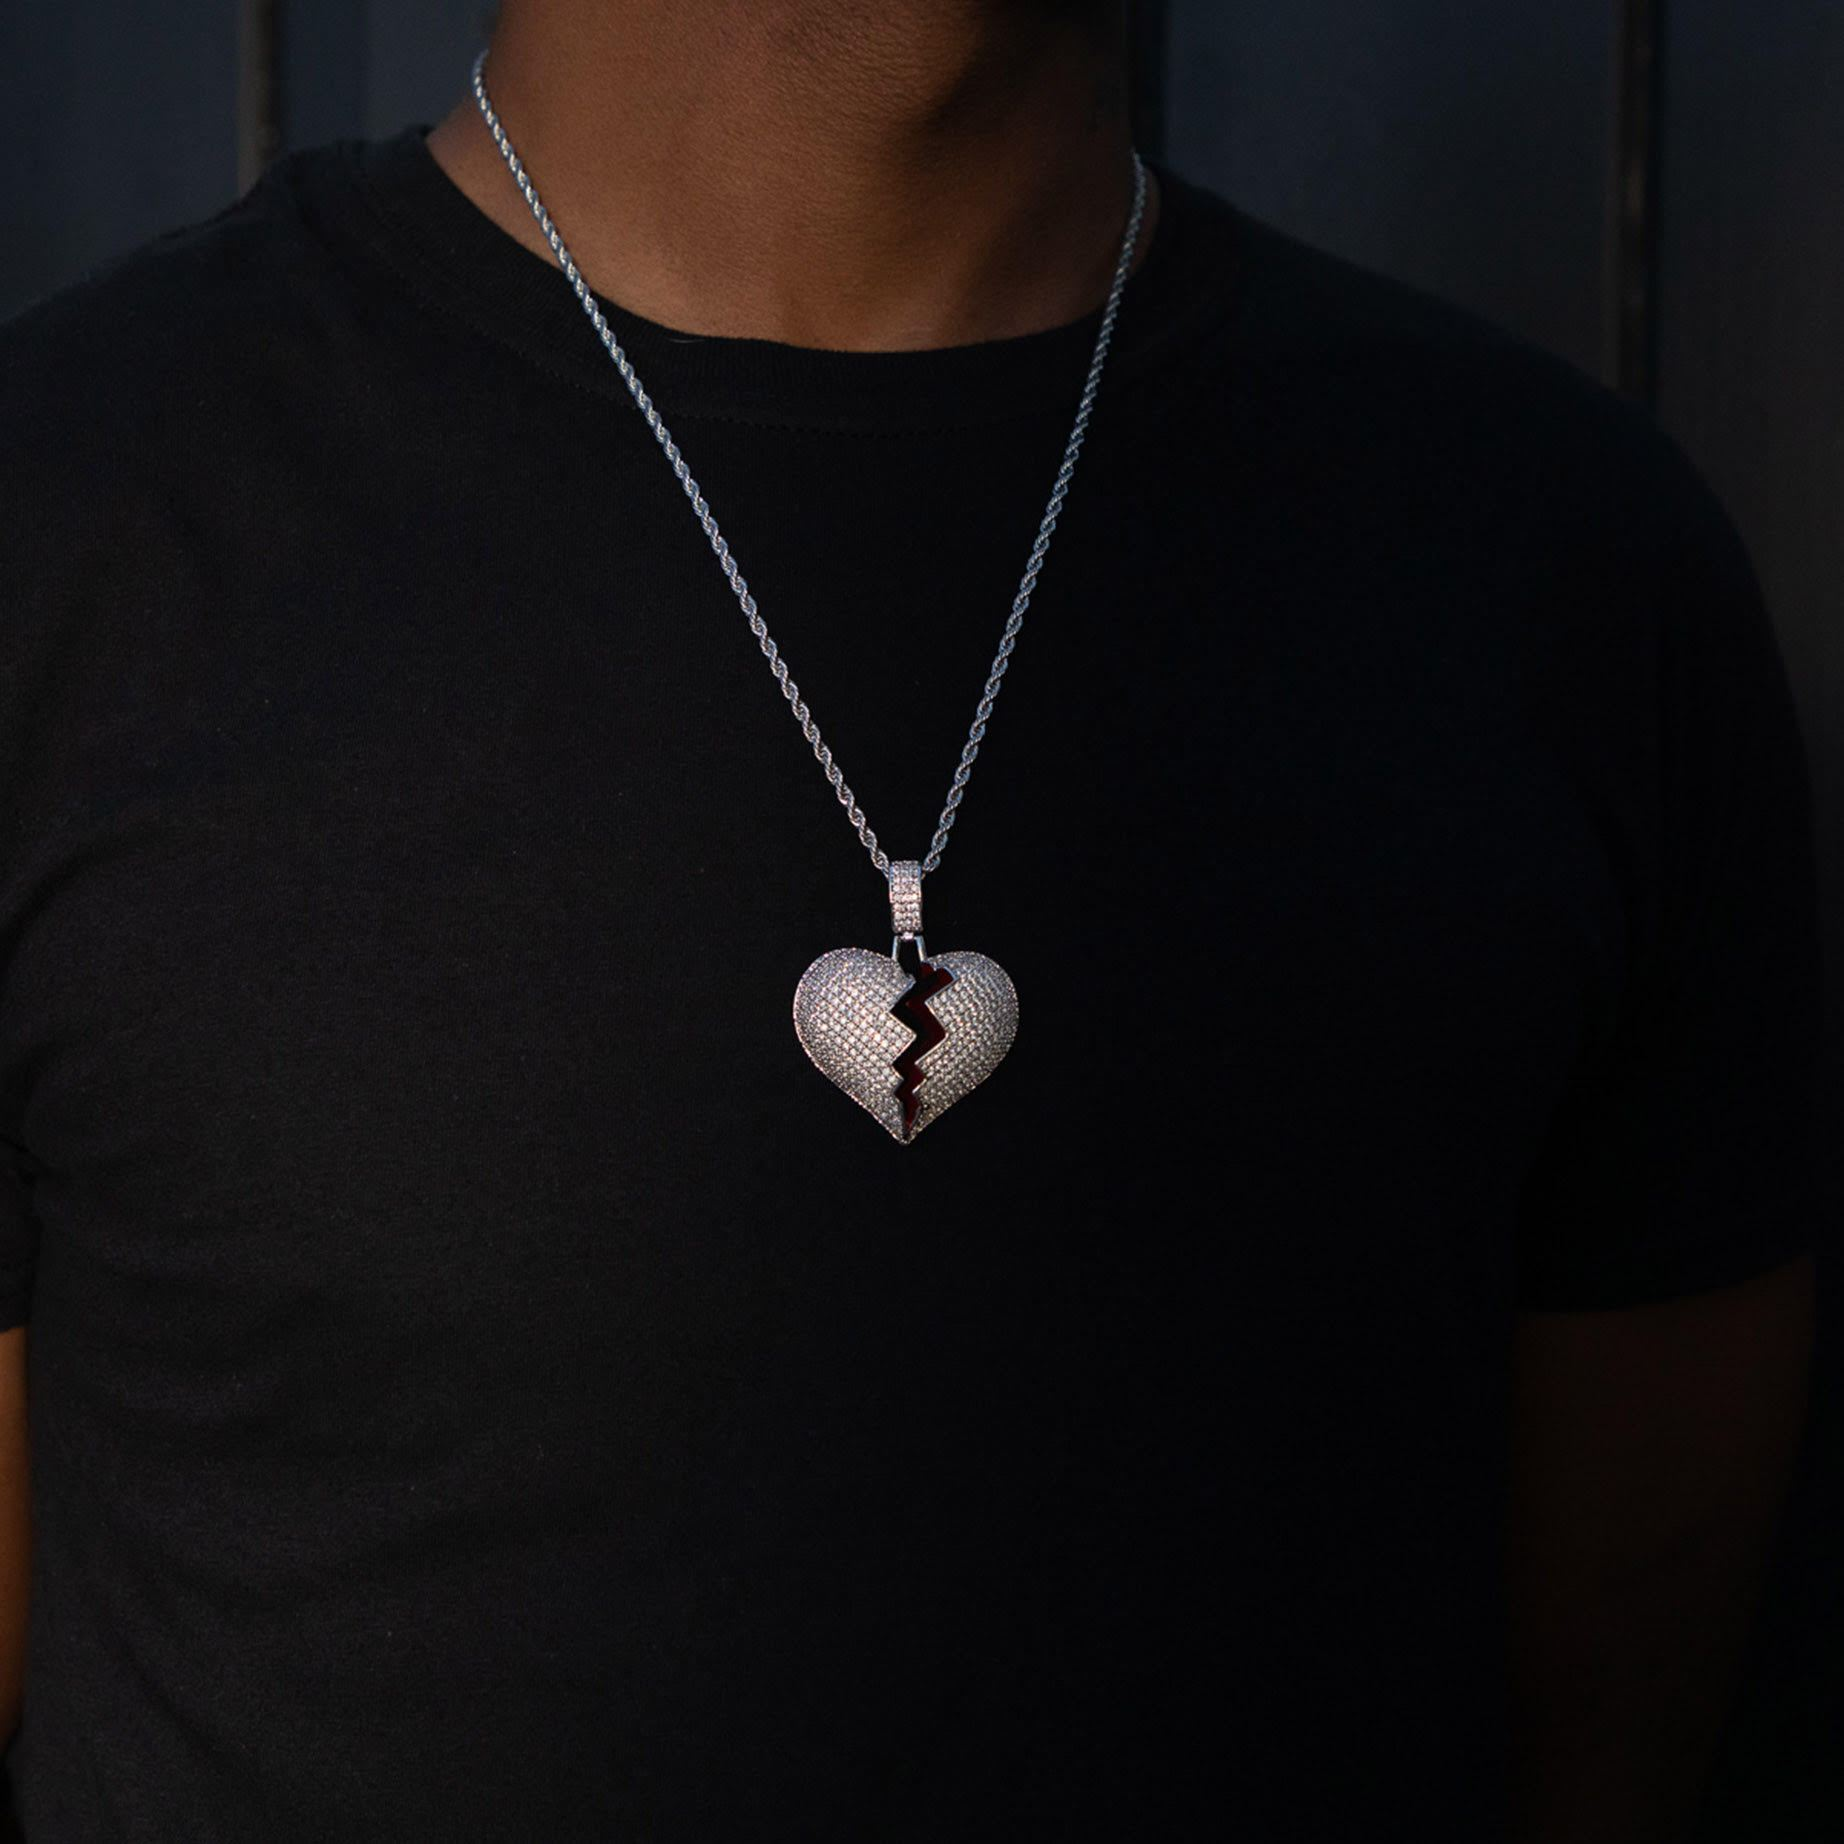 Iced Silver Heartbreak Rapper Pendant - Got Drip - Jewelry - Ice - Jake Paul